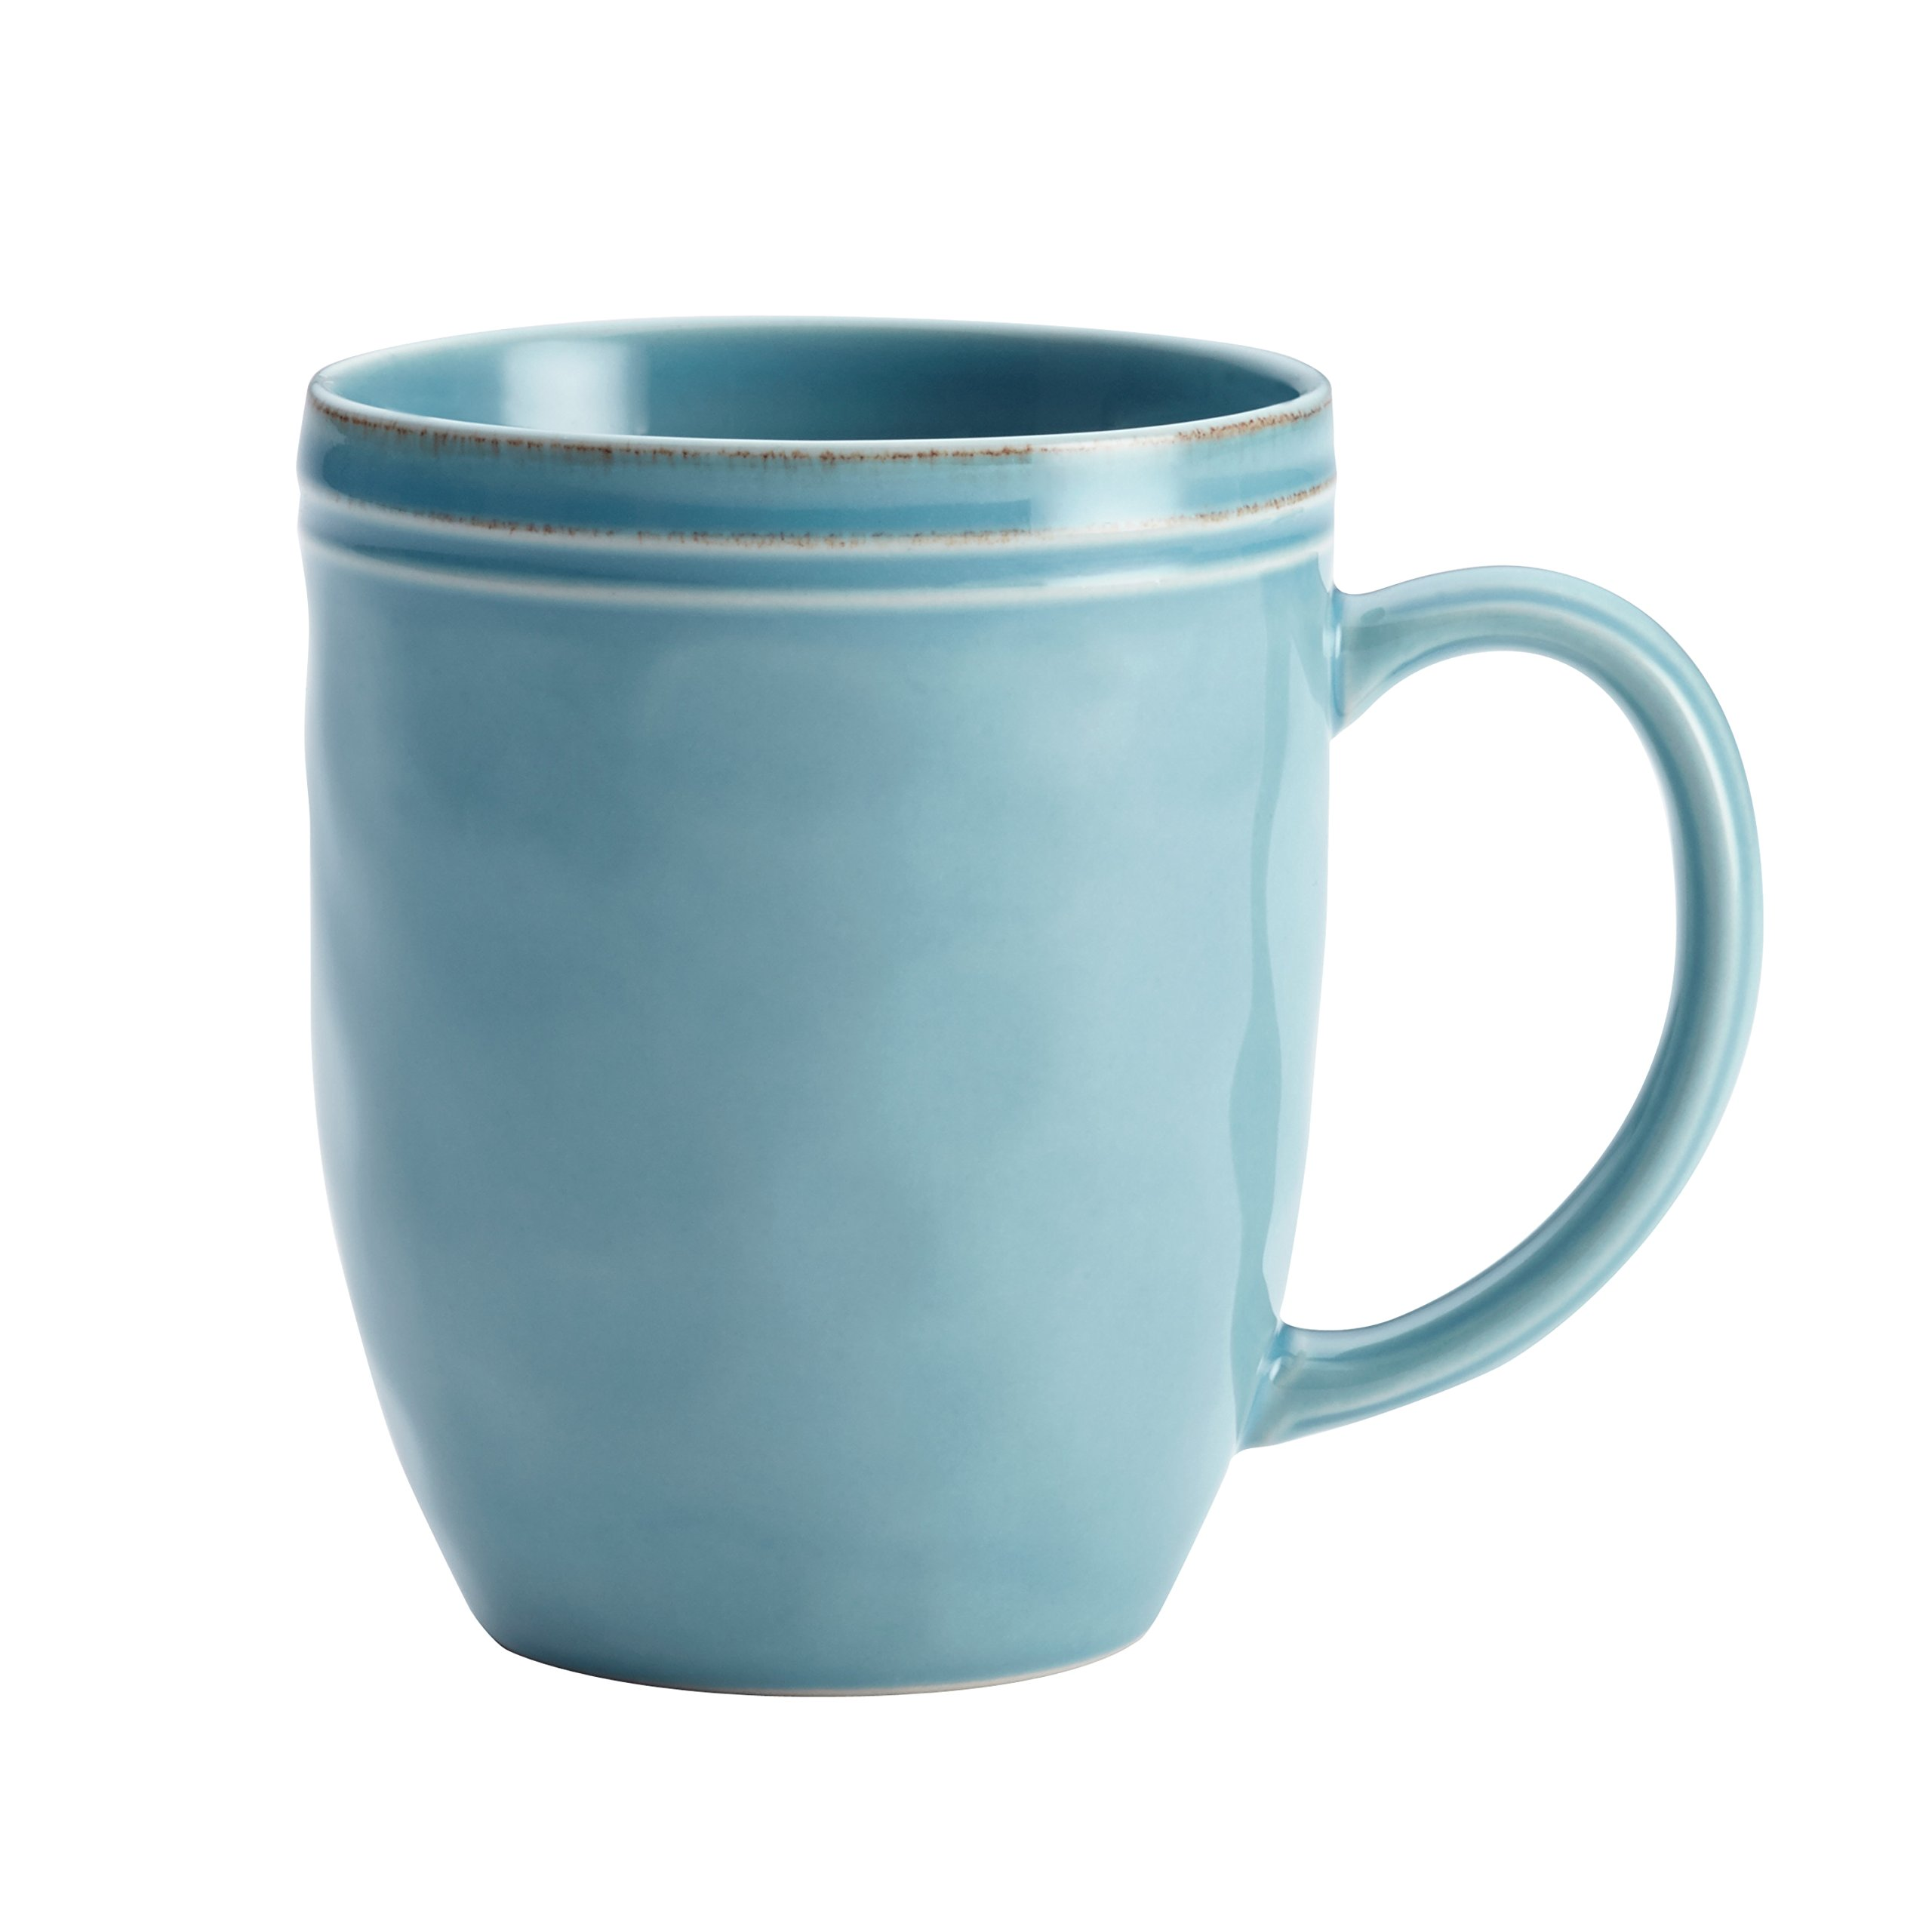 Rachael Ray Cucina Dinnerware 16-Piece Stoneware Dinnerware Set, Agave Blue by Rachael Ray (Image #3)